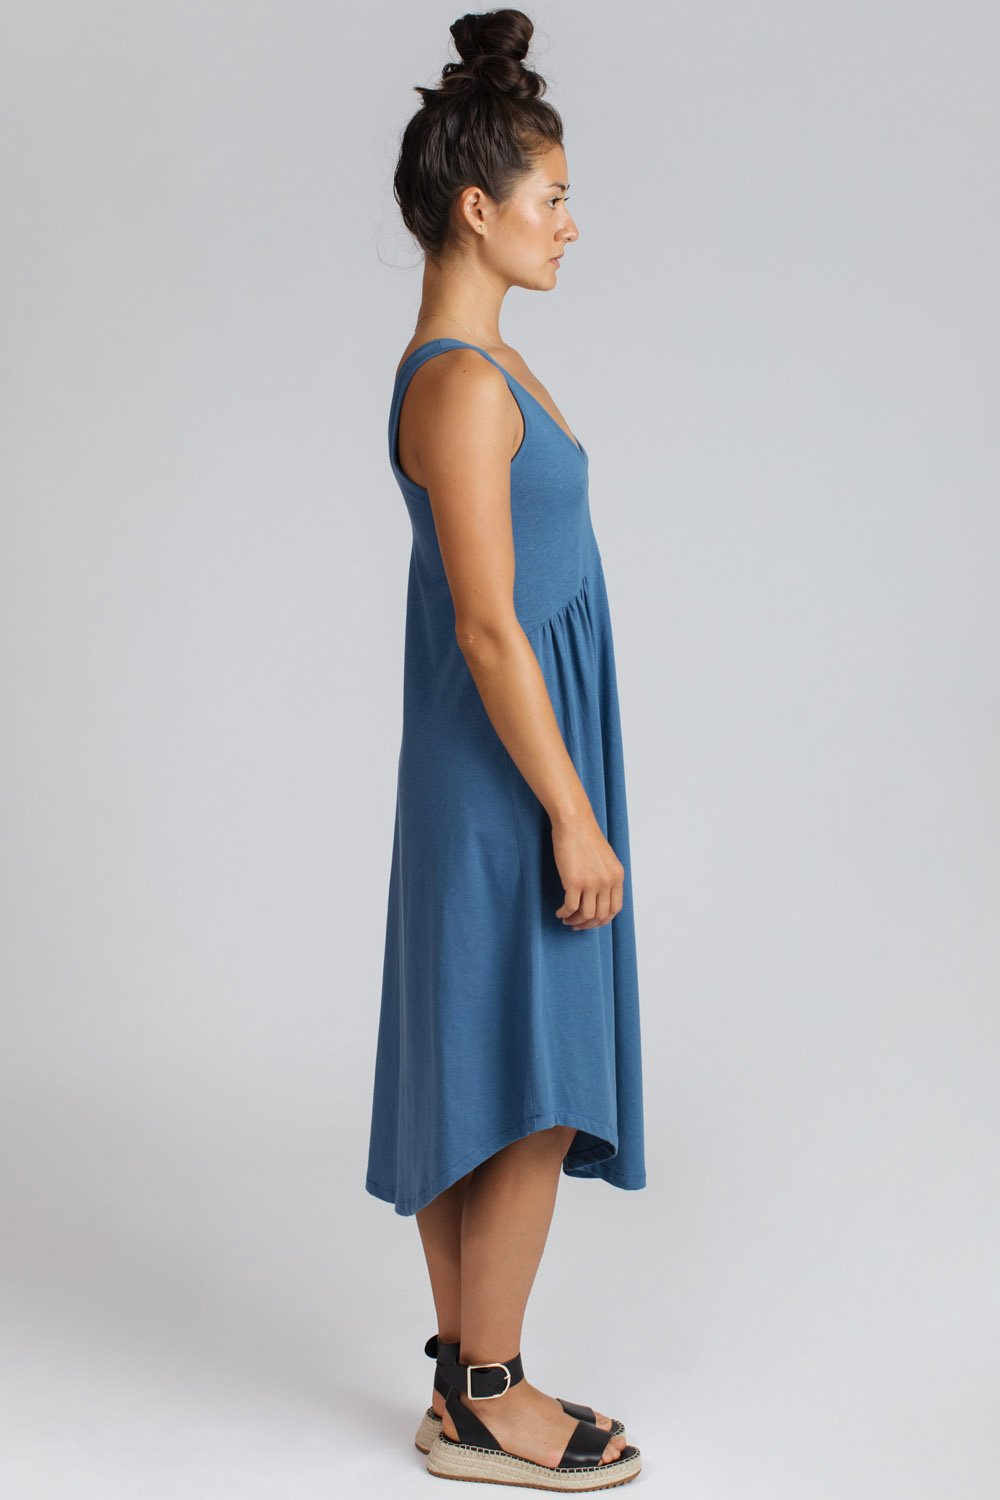 Marseille Dress - Denim